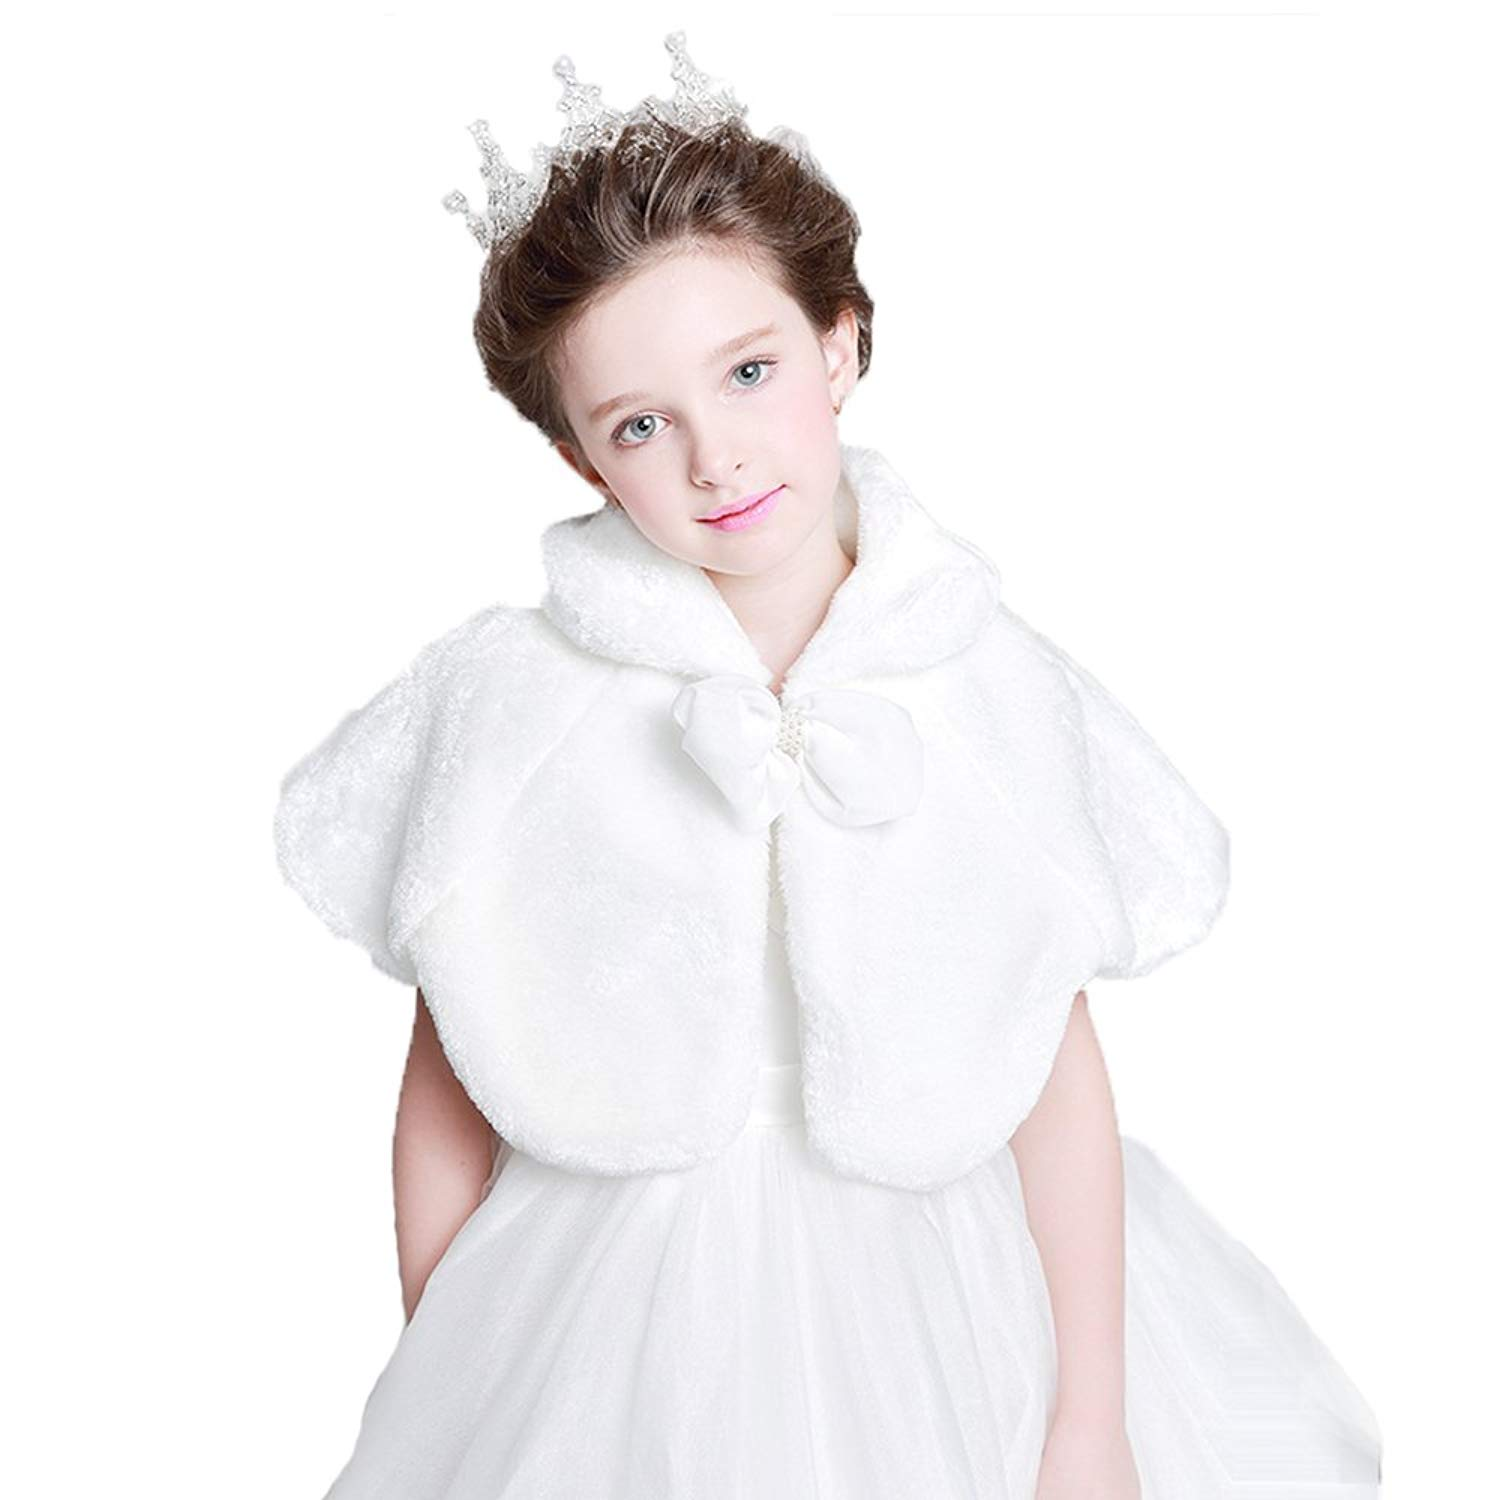 b9dd1ff23a EdenShow Flower Girls Faux Fur Shrug Bow Bolero Winter Jacket Princess  Bridesmaid Cape Wedding Party Dresses